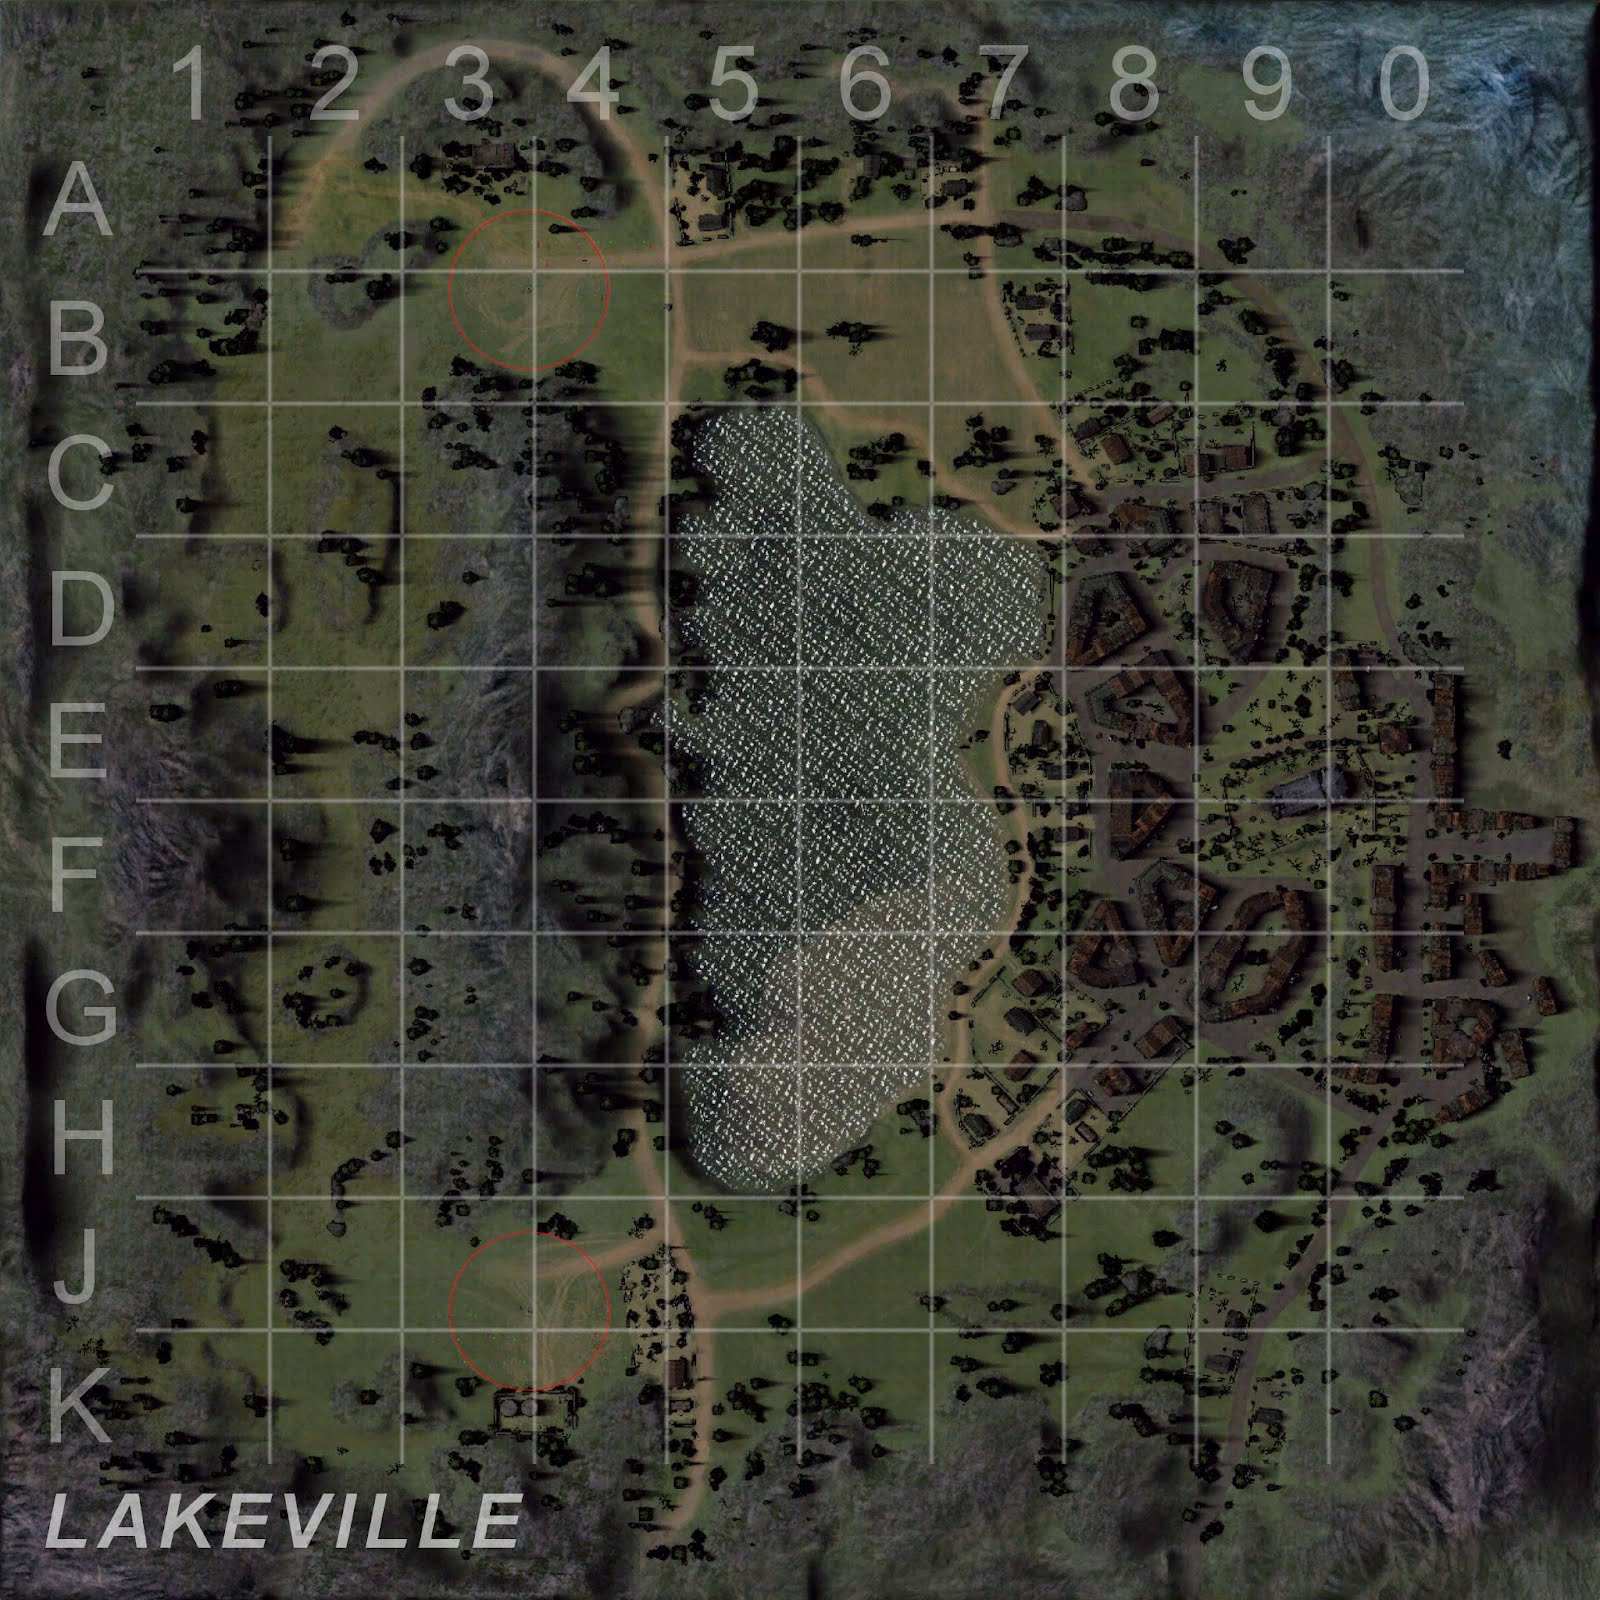 Wot map analysis lakeville wwpd wargames board games rpgs wot map analysis lakeville gumiabroncs Choice Image